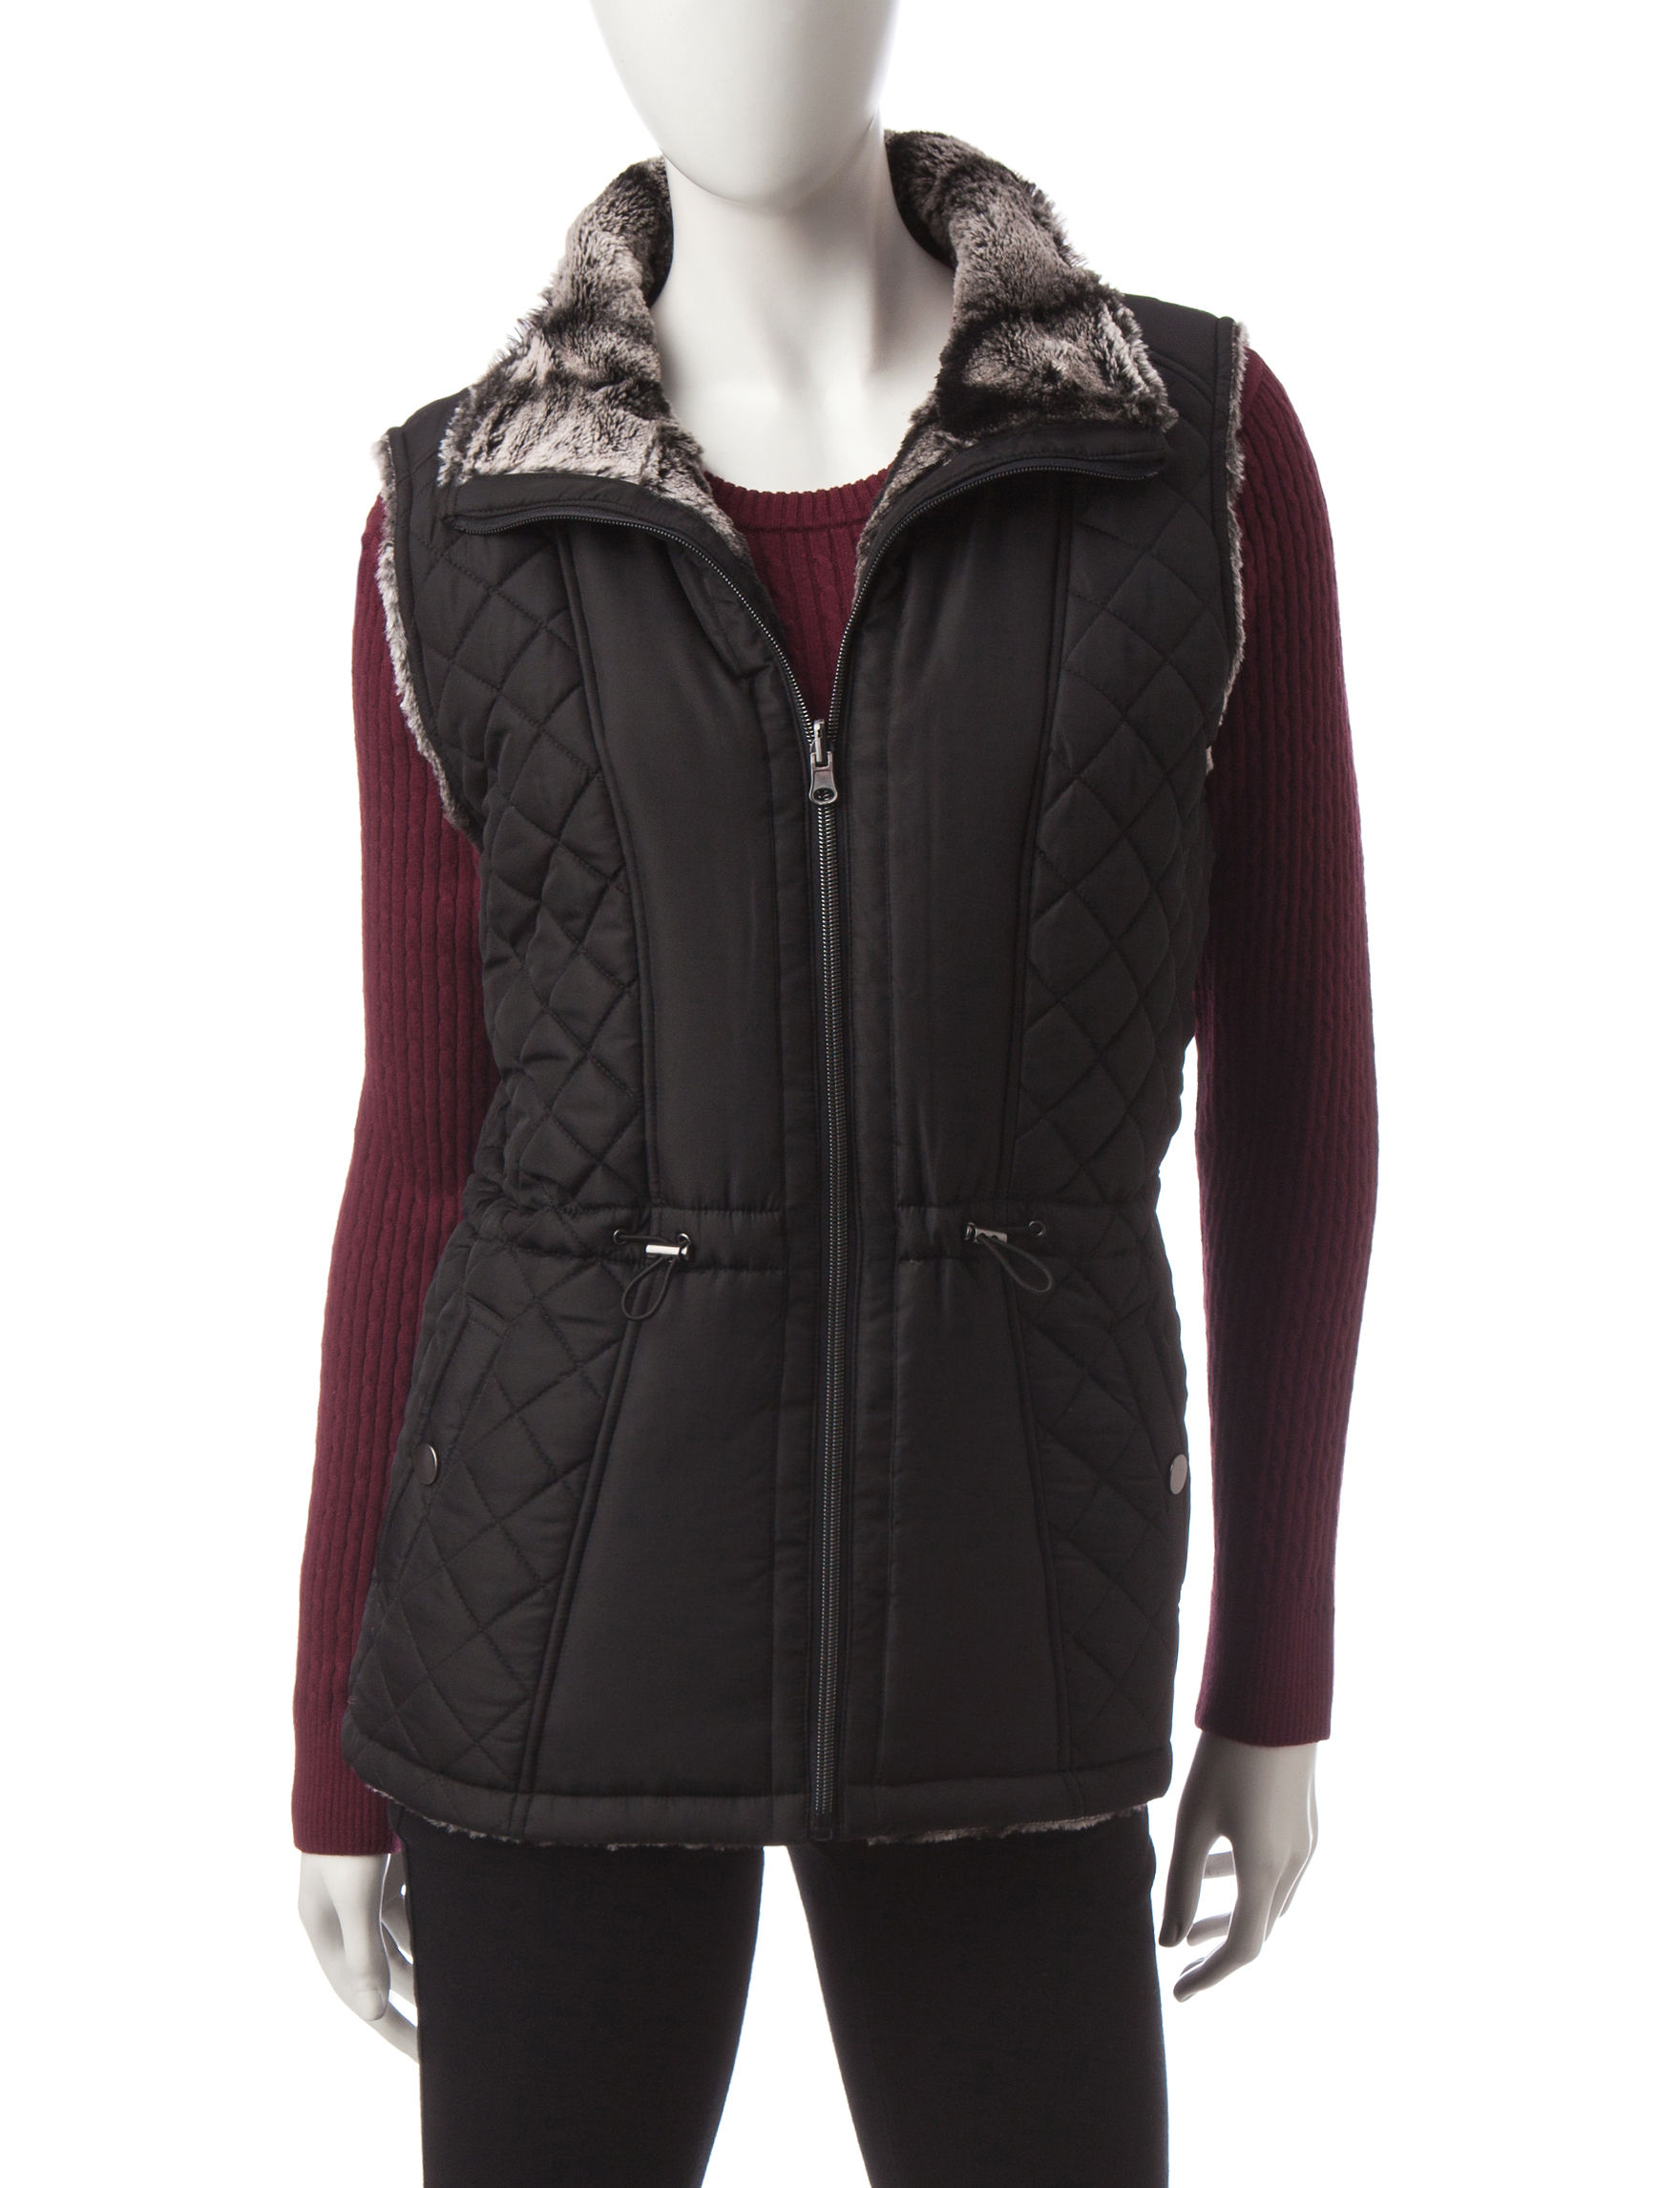 Valerie Stevens Black Puffer & Quilted Jackets